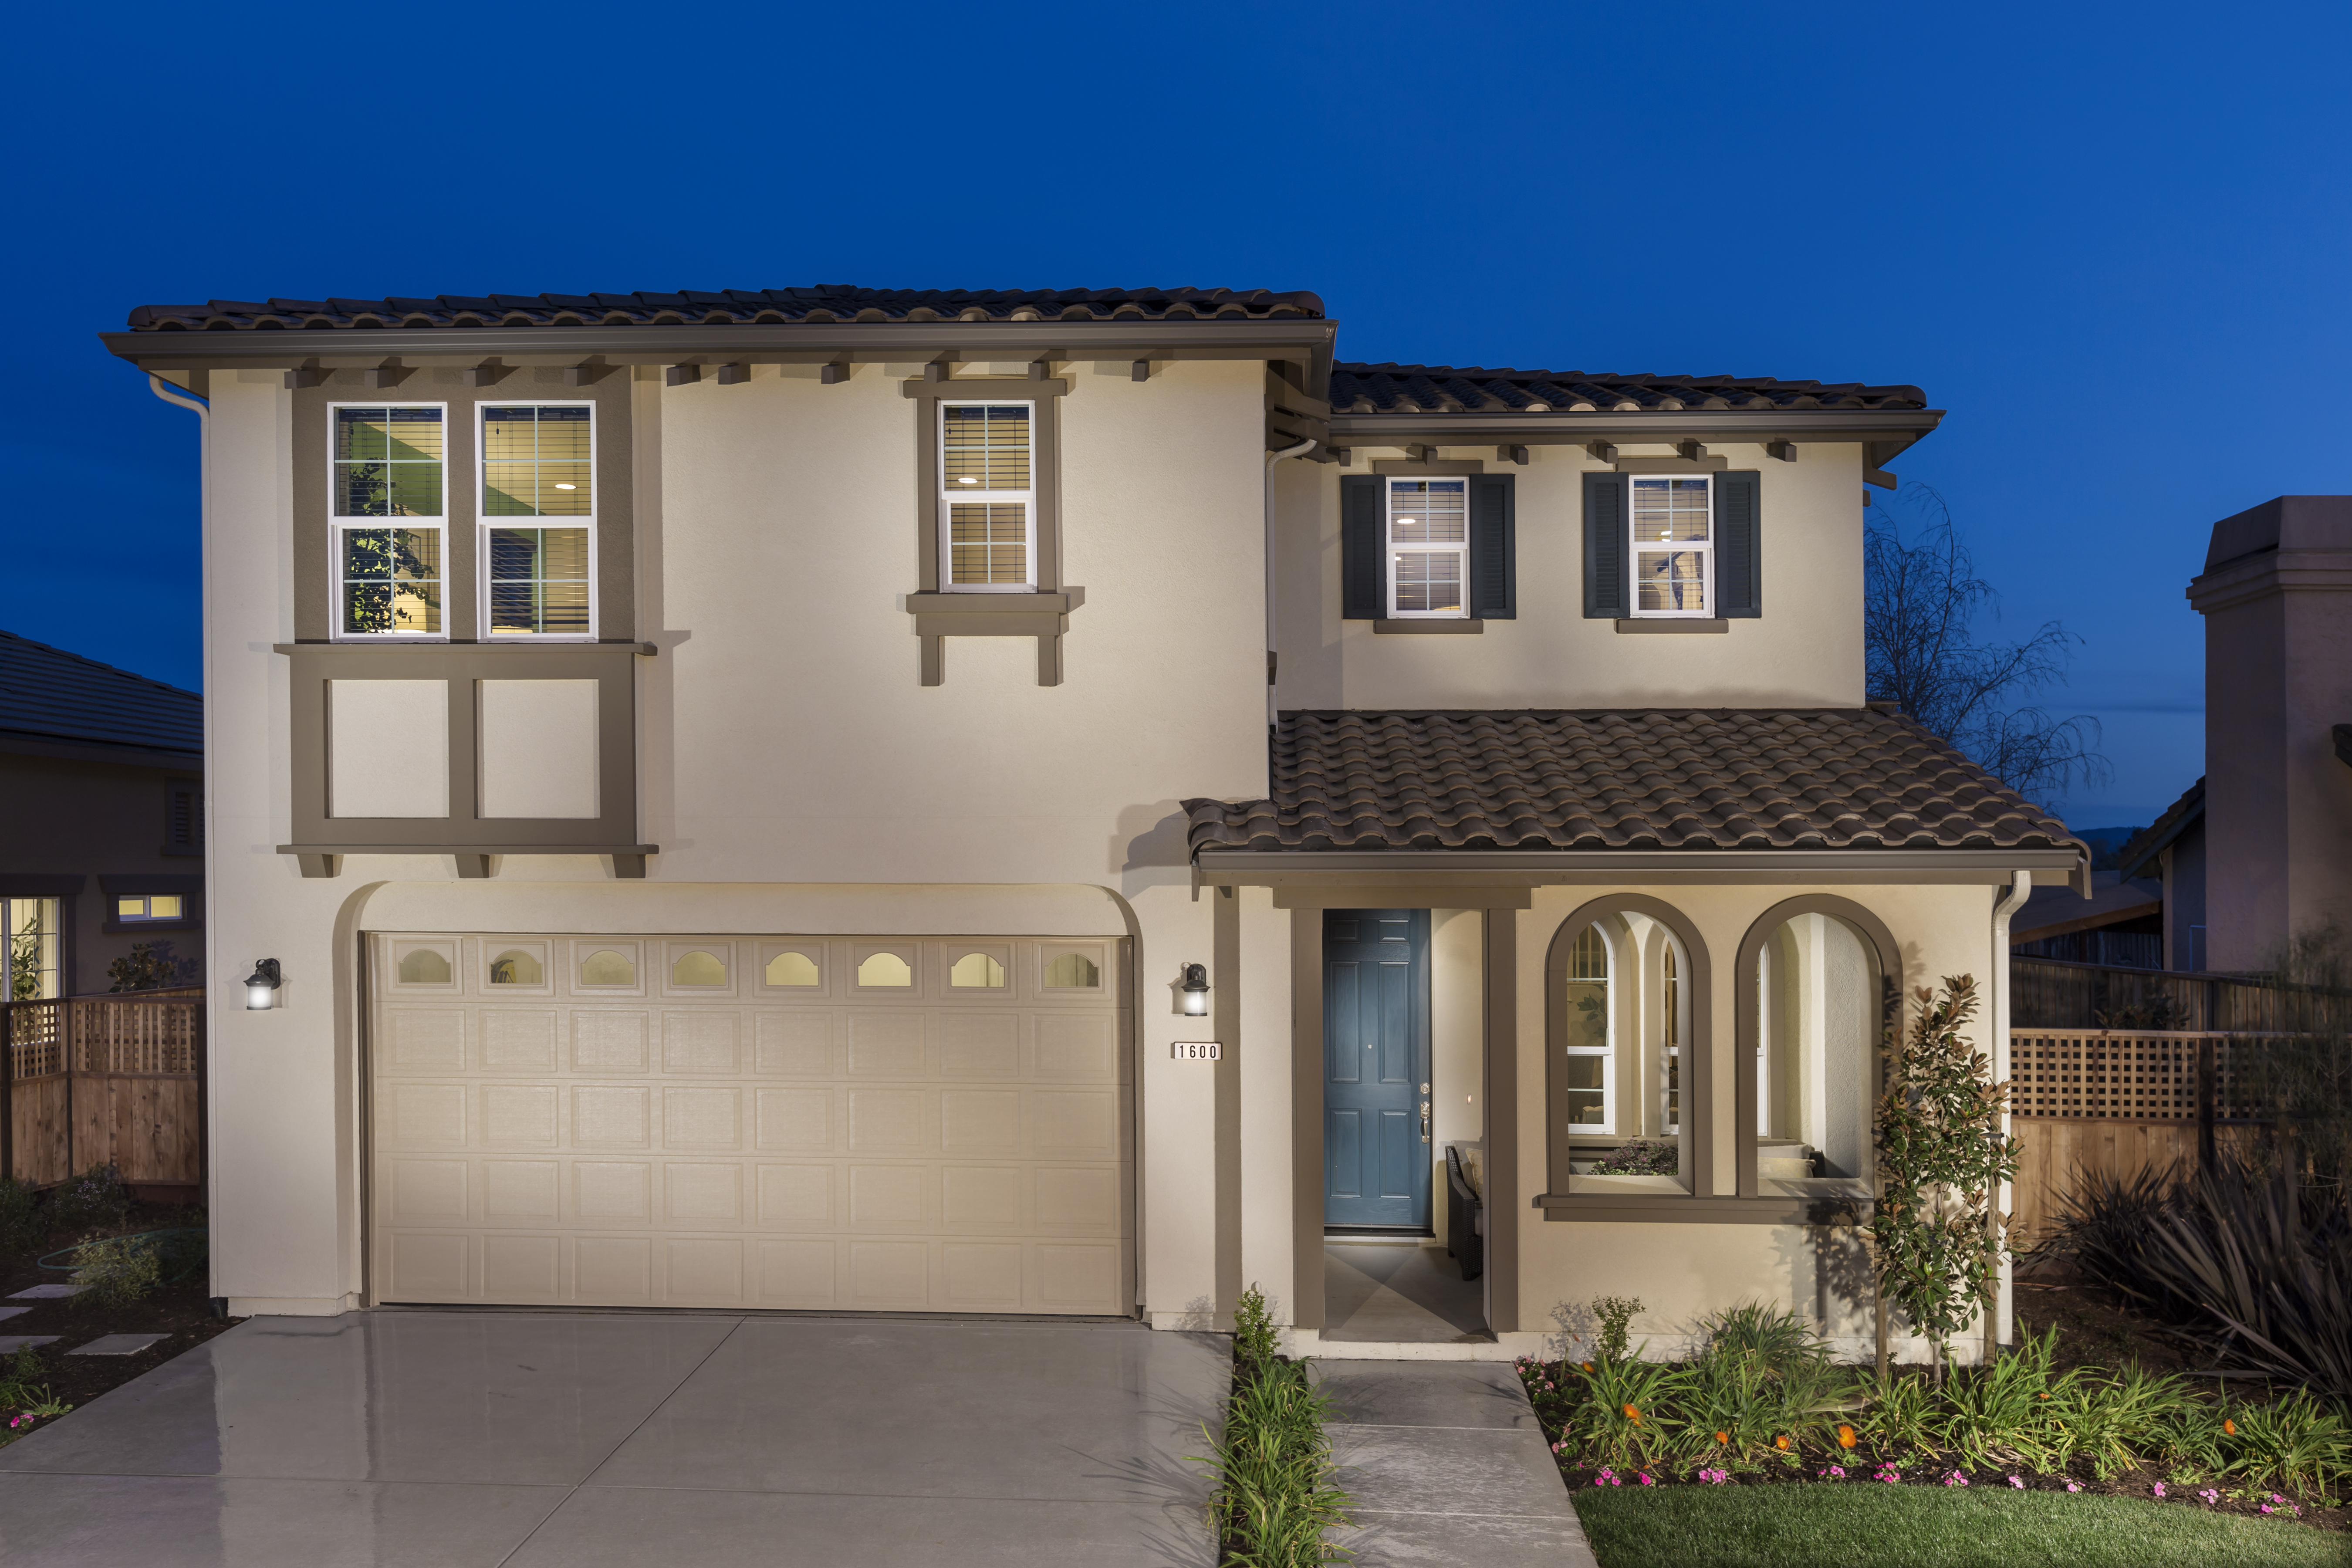 kb home debuts new community in morgan hill kb home newsroom